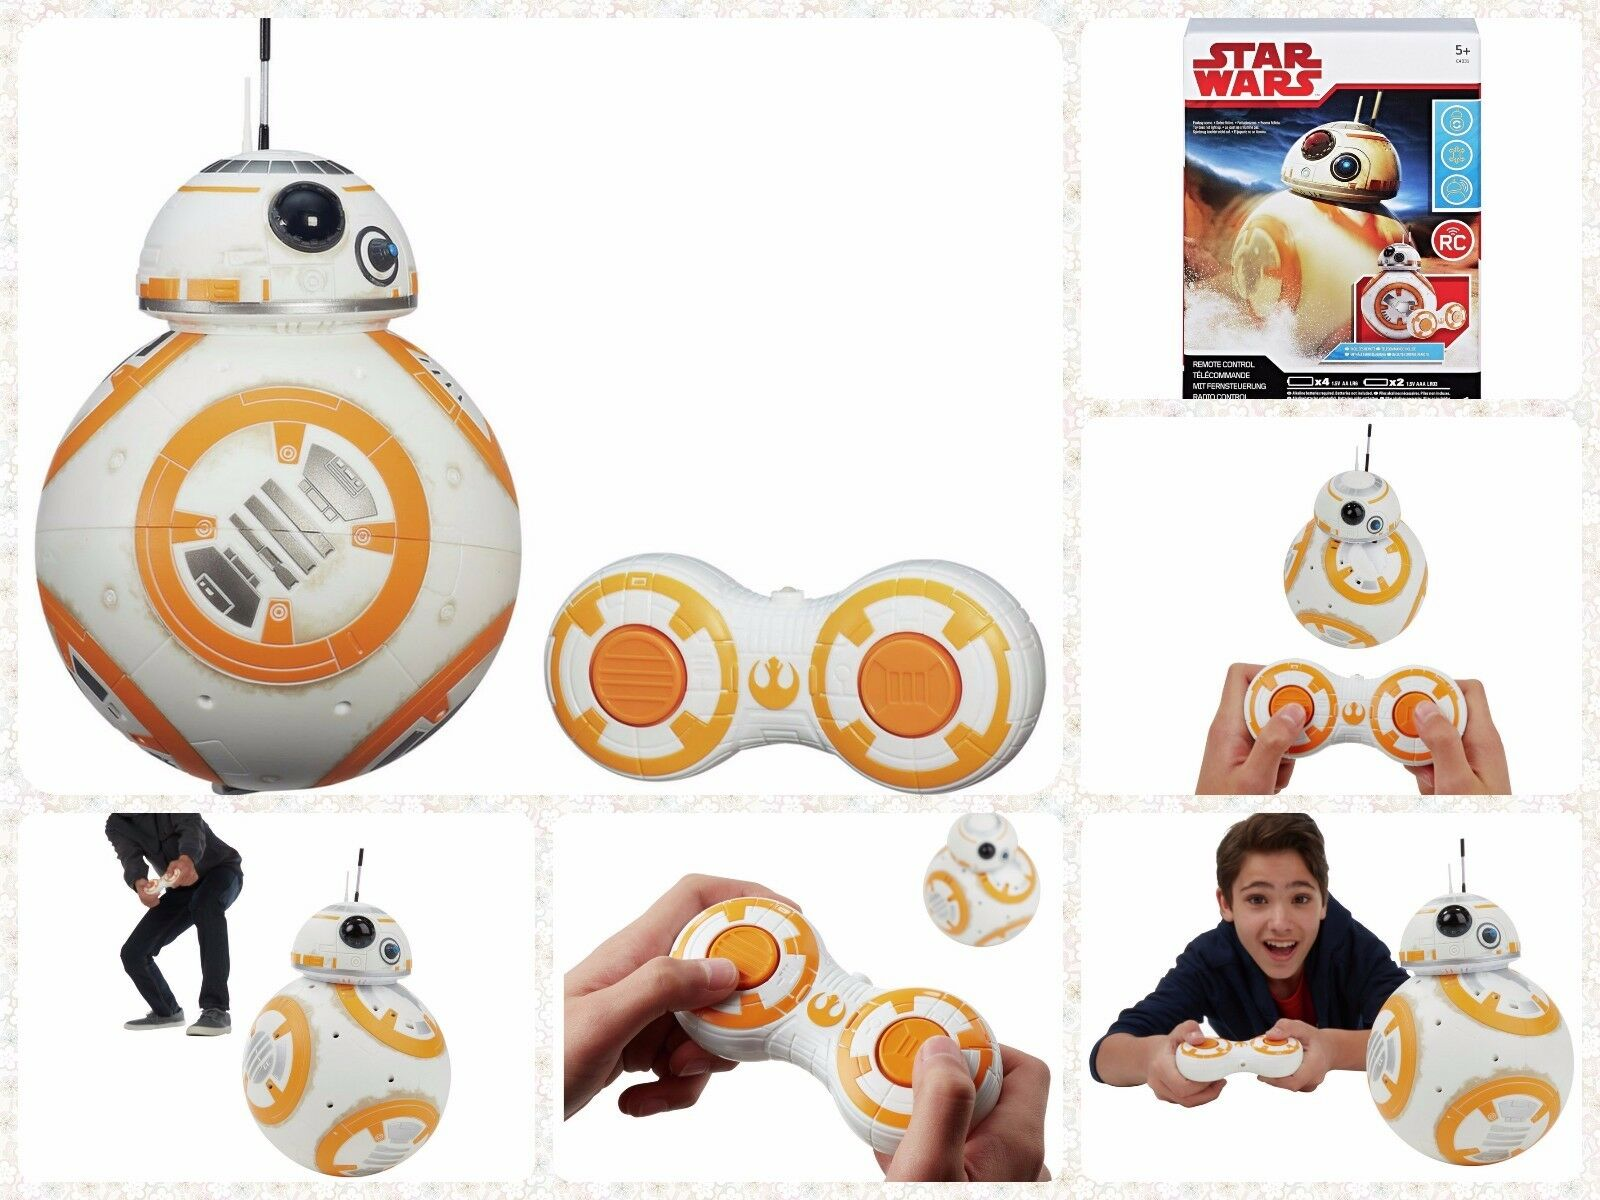 Star Wars The Force si sveglia telecomando Robot RC DROID Natale Regalo Bambini